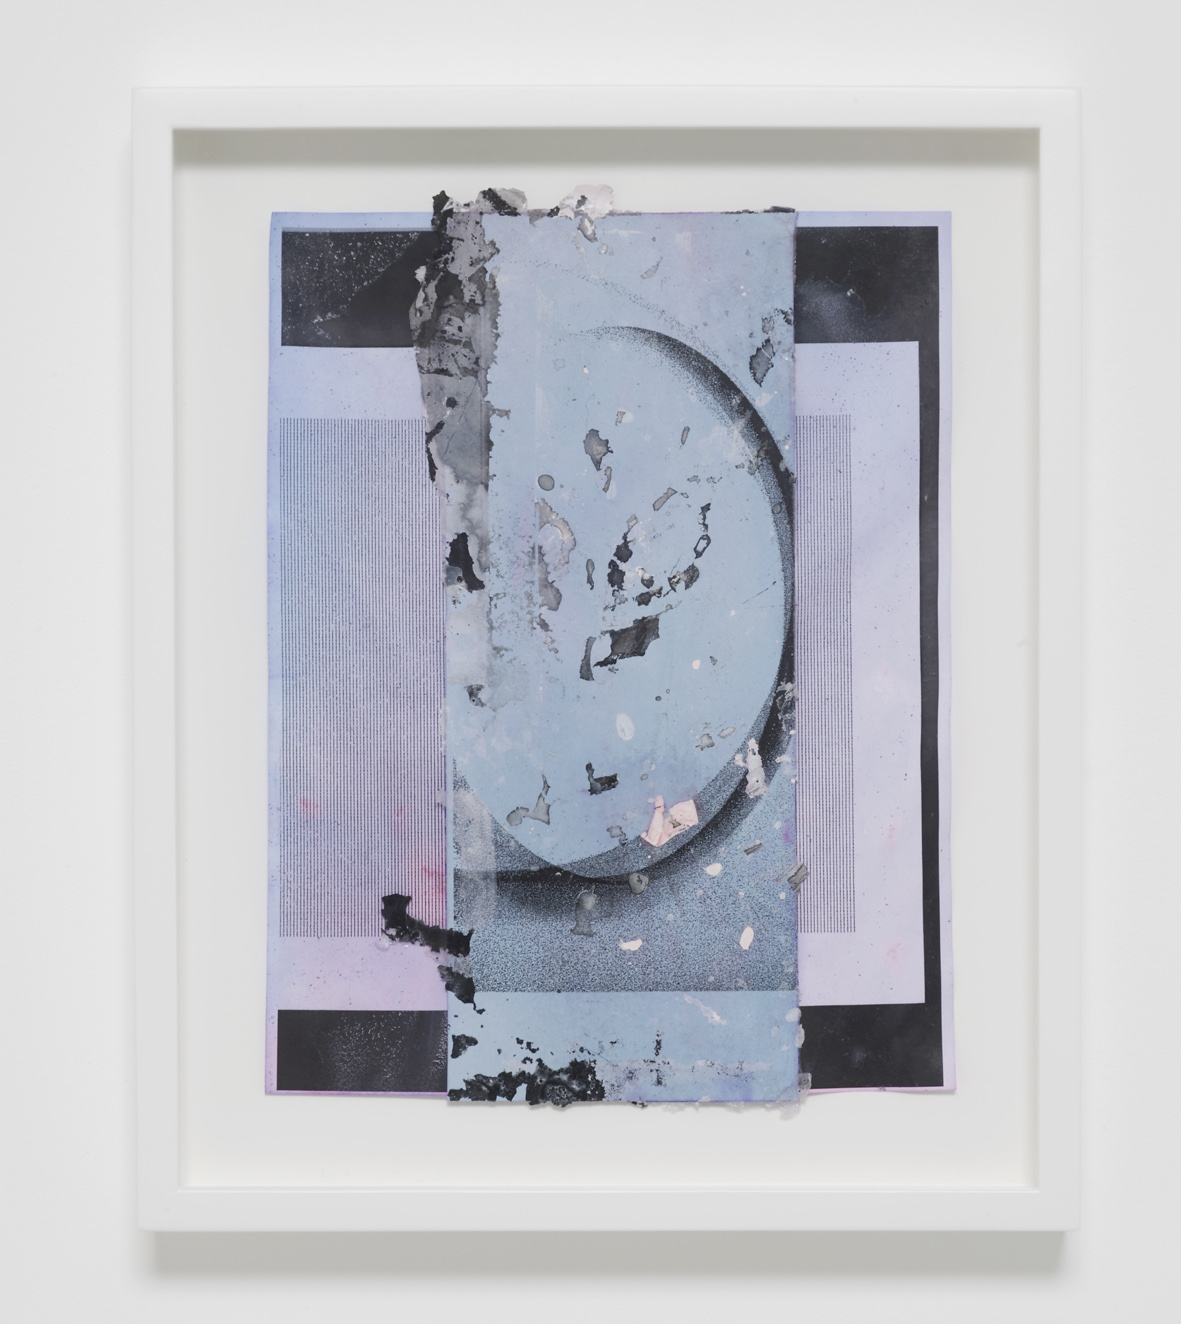 Josh Brand  Untitled  2018  Mixed media and dyed photocopies  35.5 x 29 x 4.4 cm / 13.9 x 11.4 x 1.7 in framed